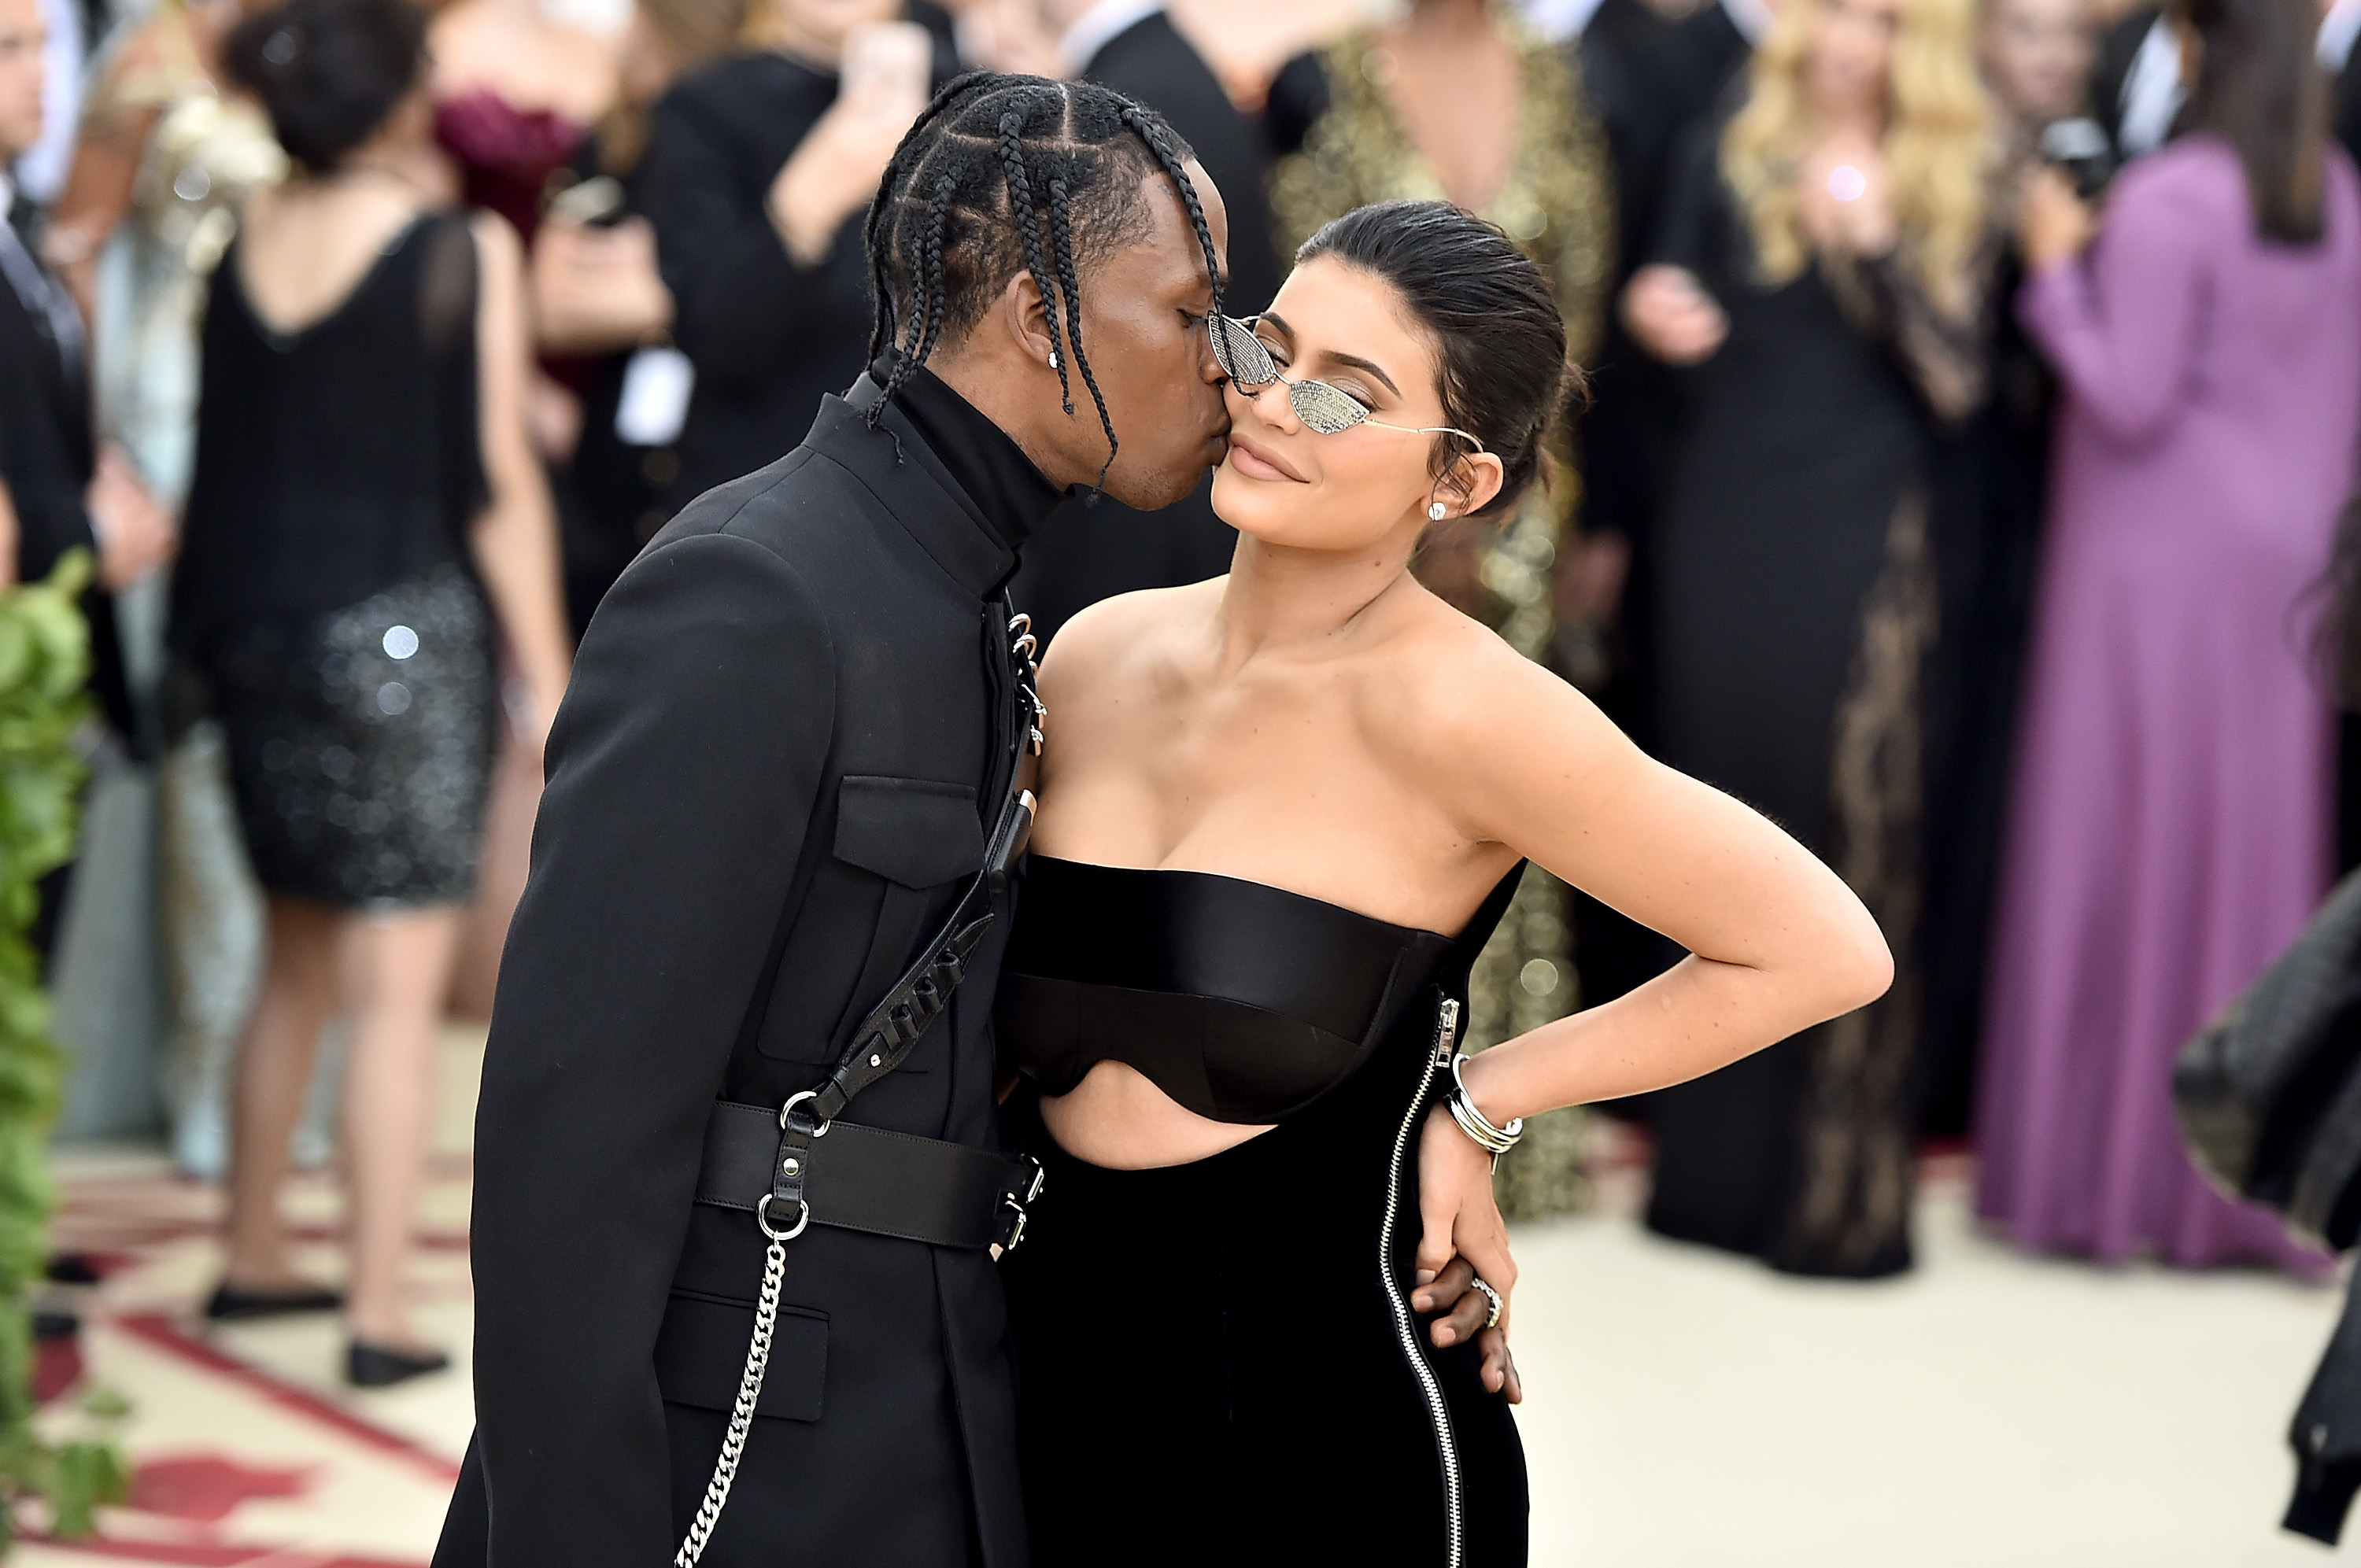 Travis Scott Shares a Rare PDA Picture With Kylie Jenner on Snapchat